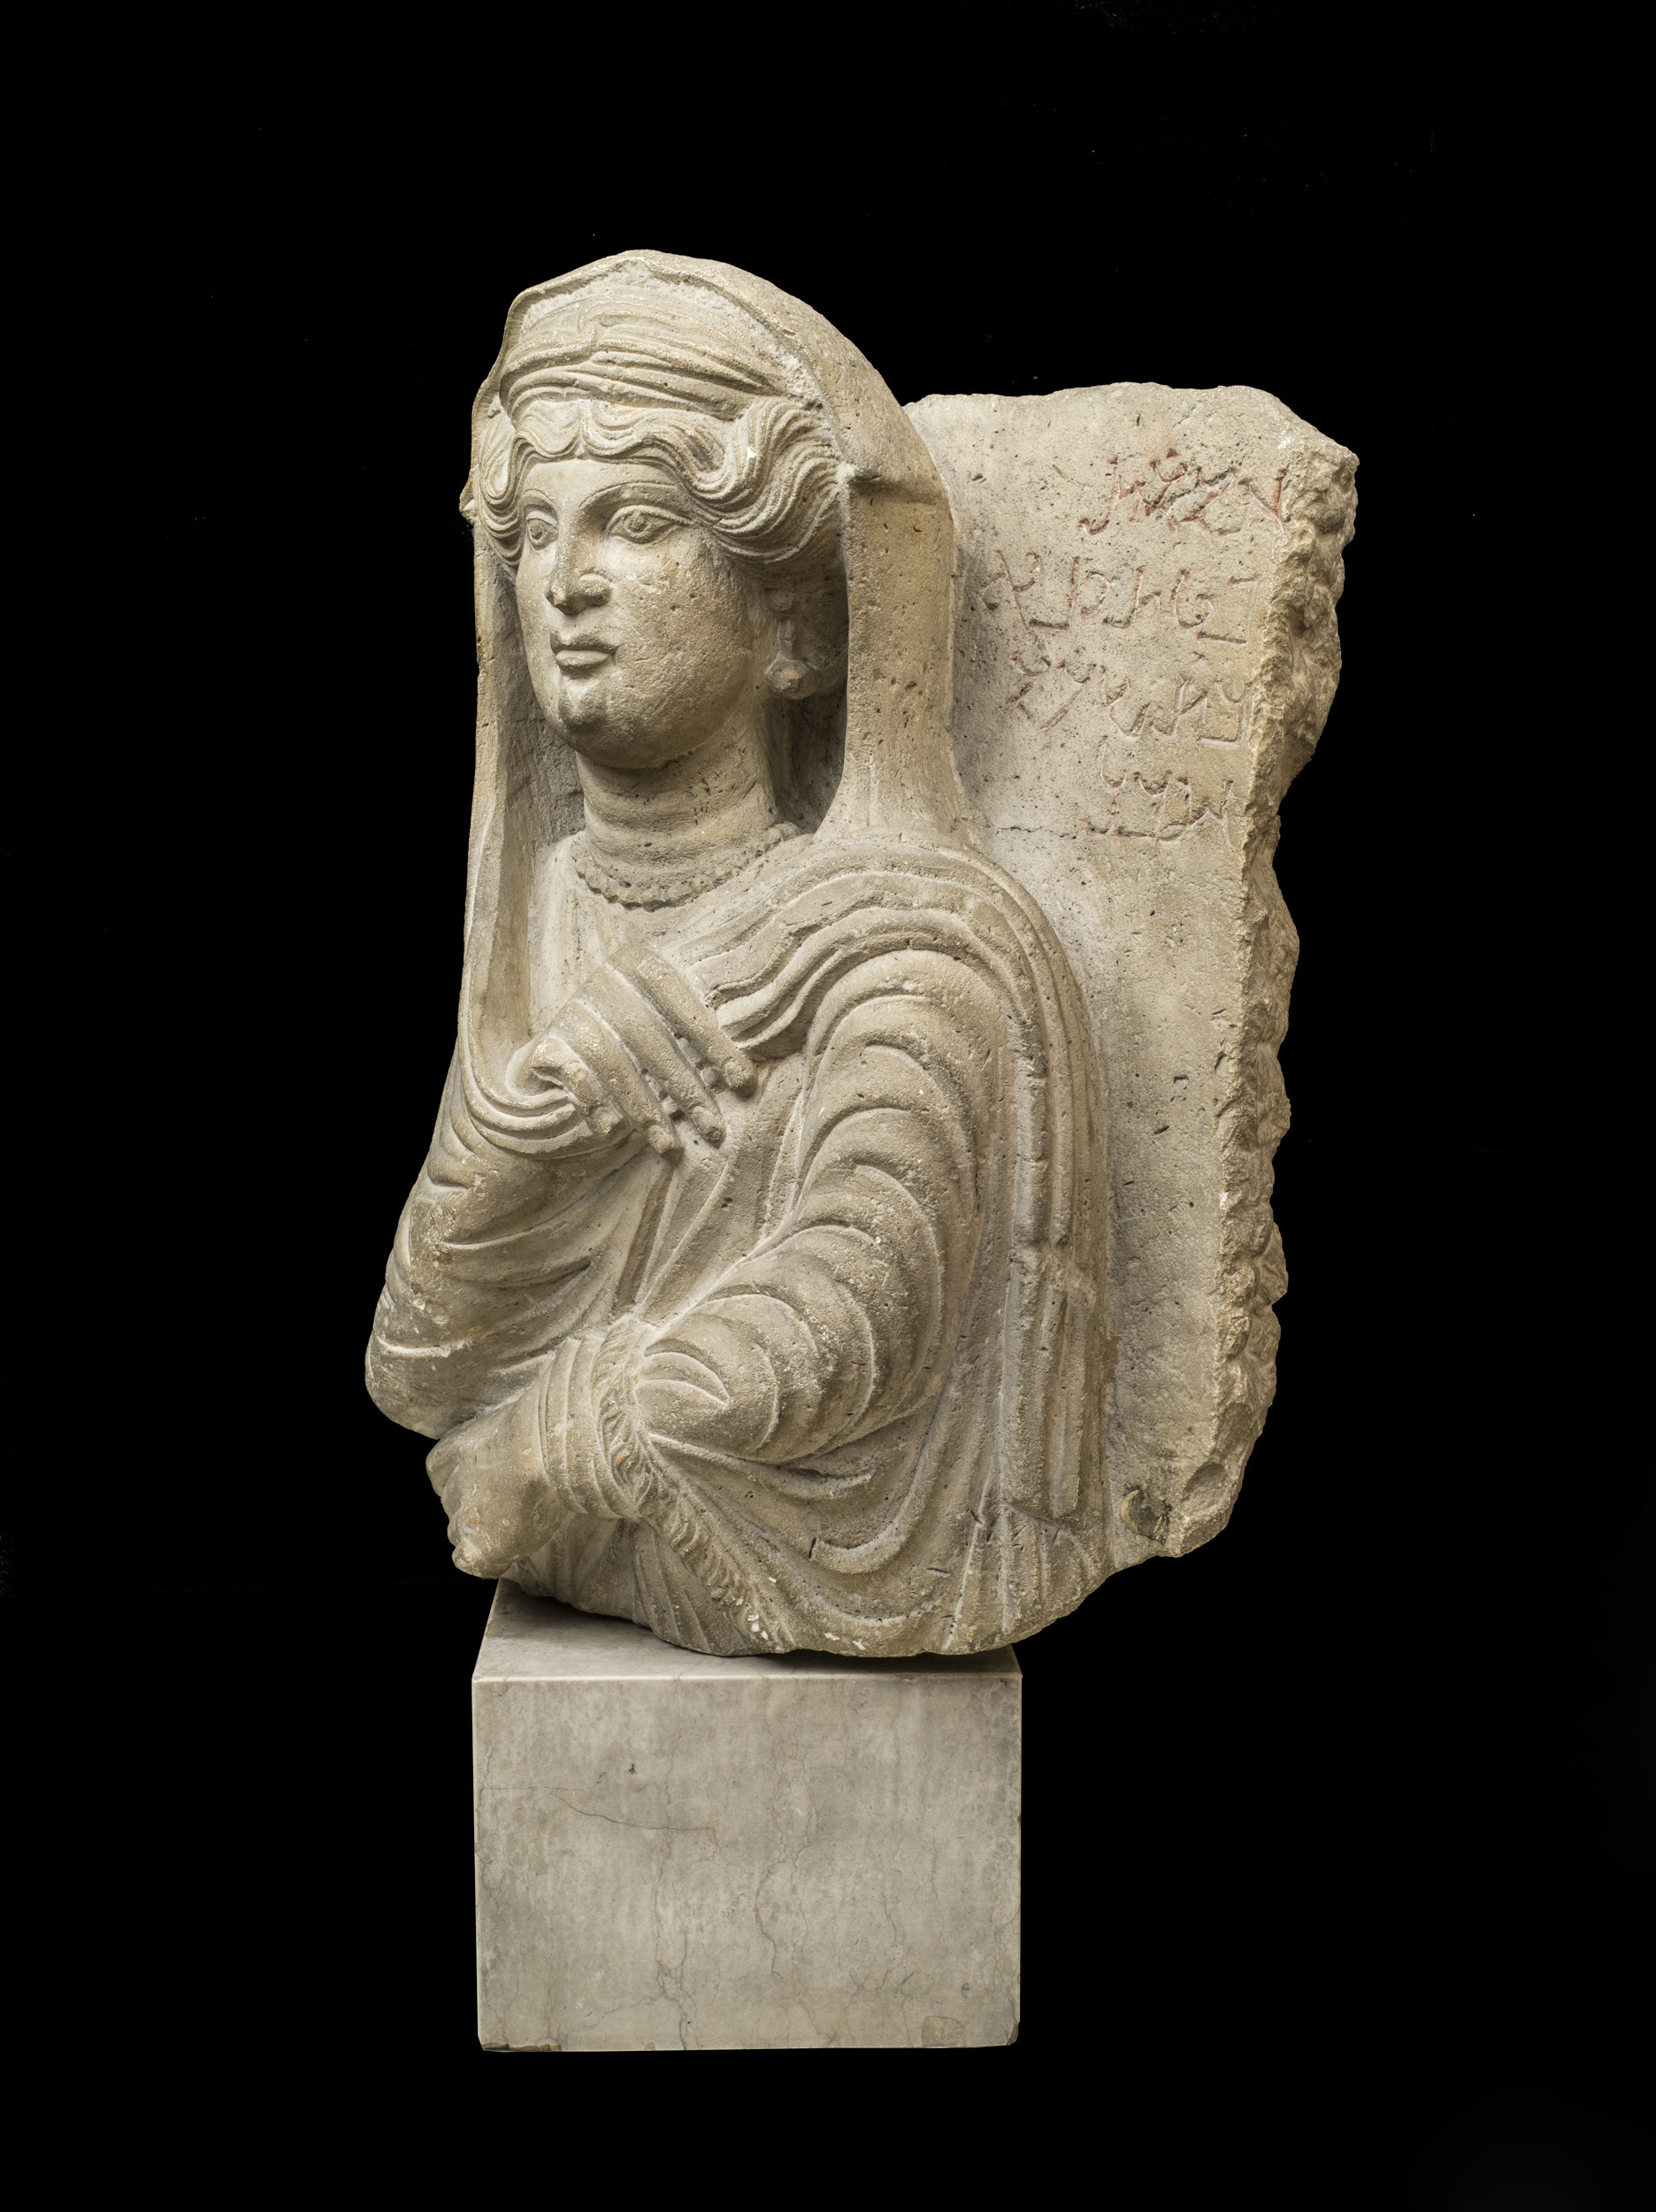 A Palmyrene Stele of a Woman - View from the Right